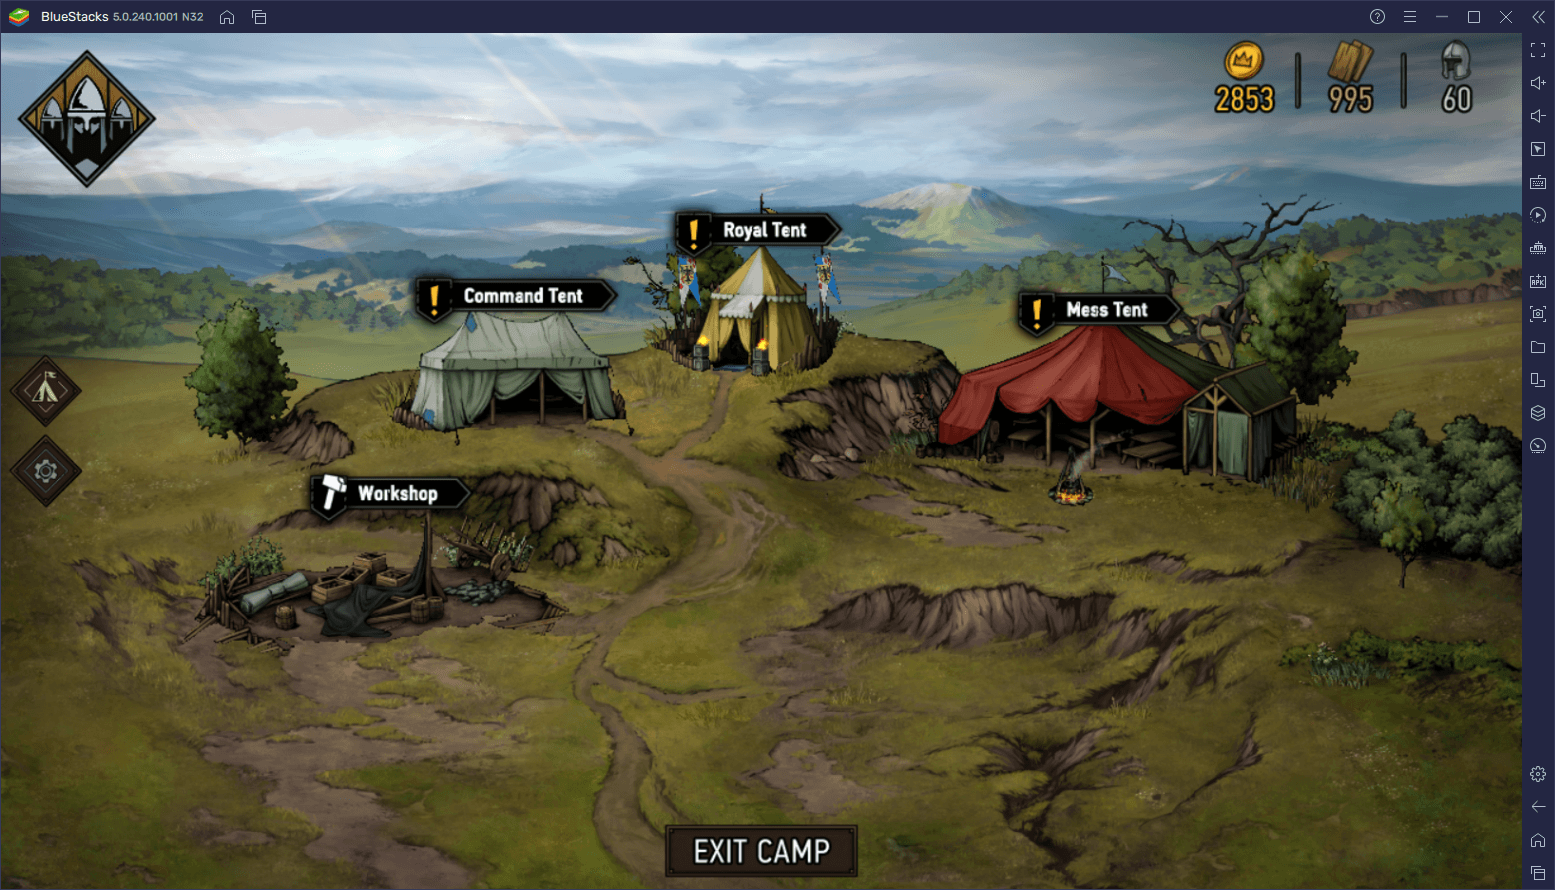 BlueStacks' Tips and Tricks for The Witcher Tales: Thronebreaker